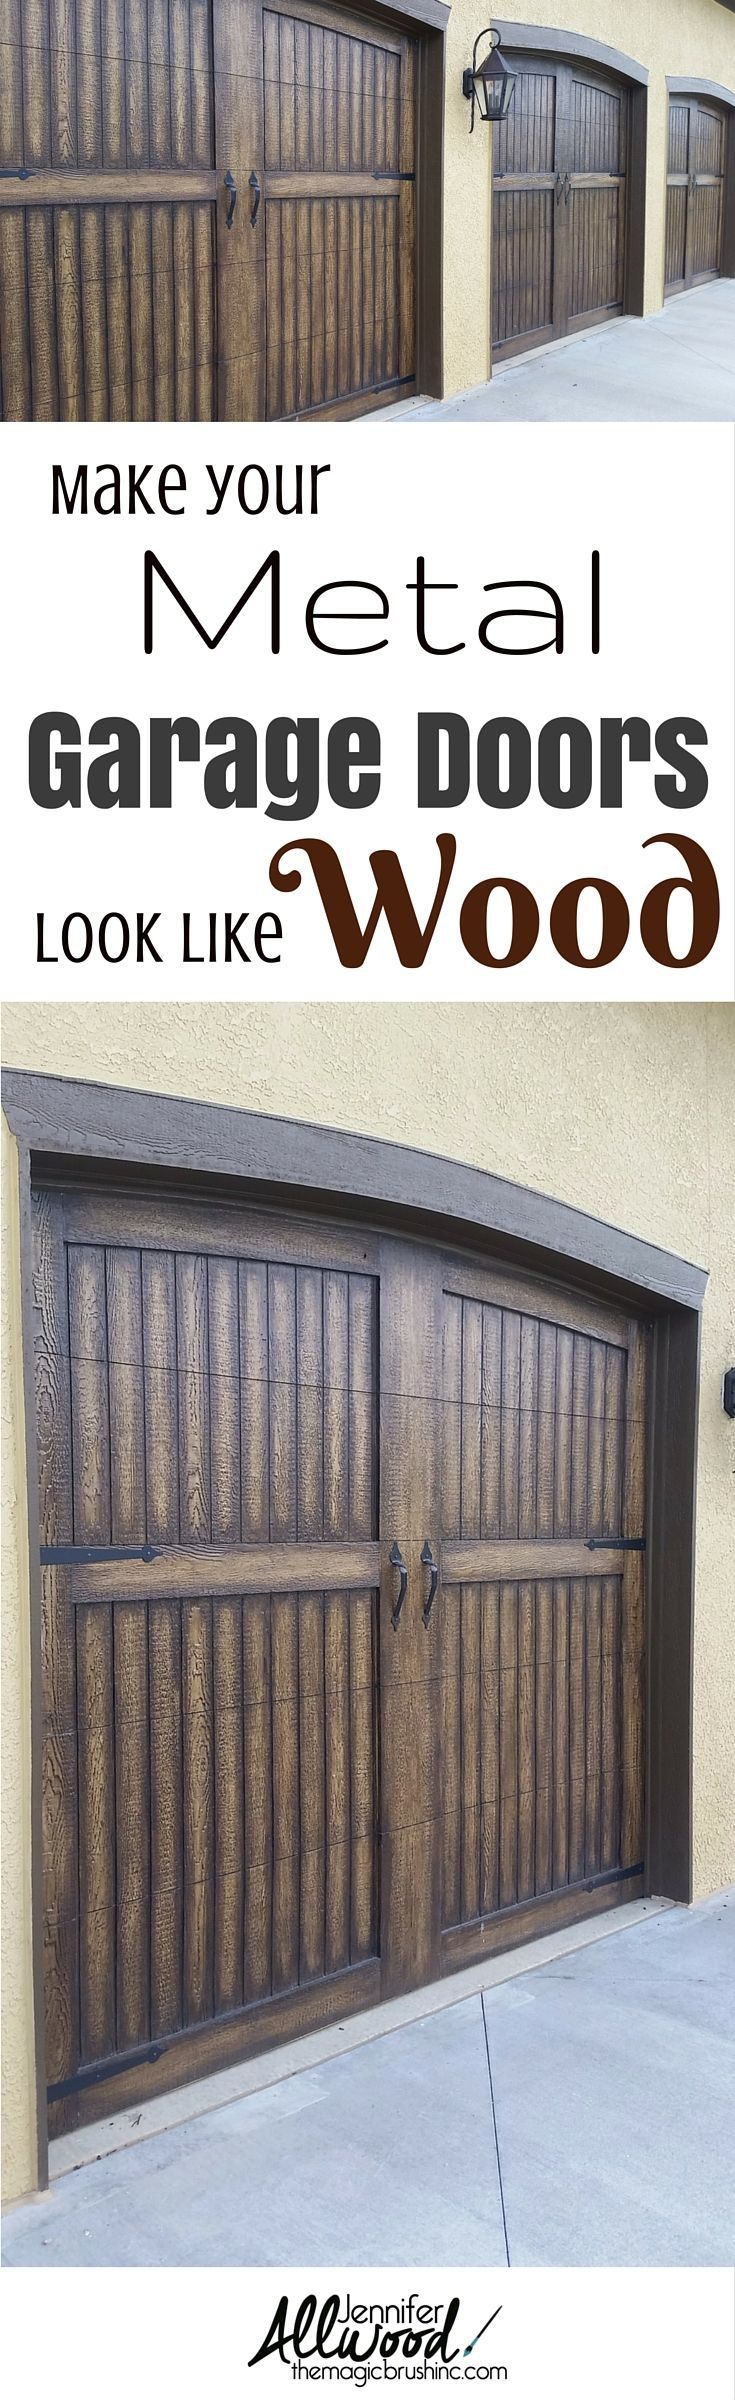 Get instant curb appeal with gorgeous, fauxed garage doors.  This how-to video will teach you everything you need to know to make your metal garage doors look like real wood! More painting tips and faux finishes at theMagicBrushinc.com